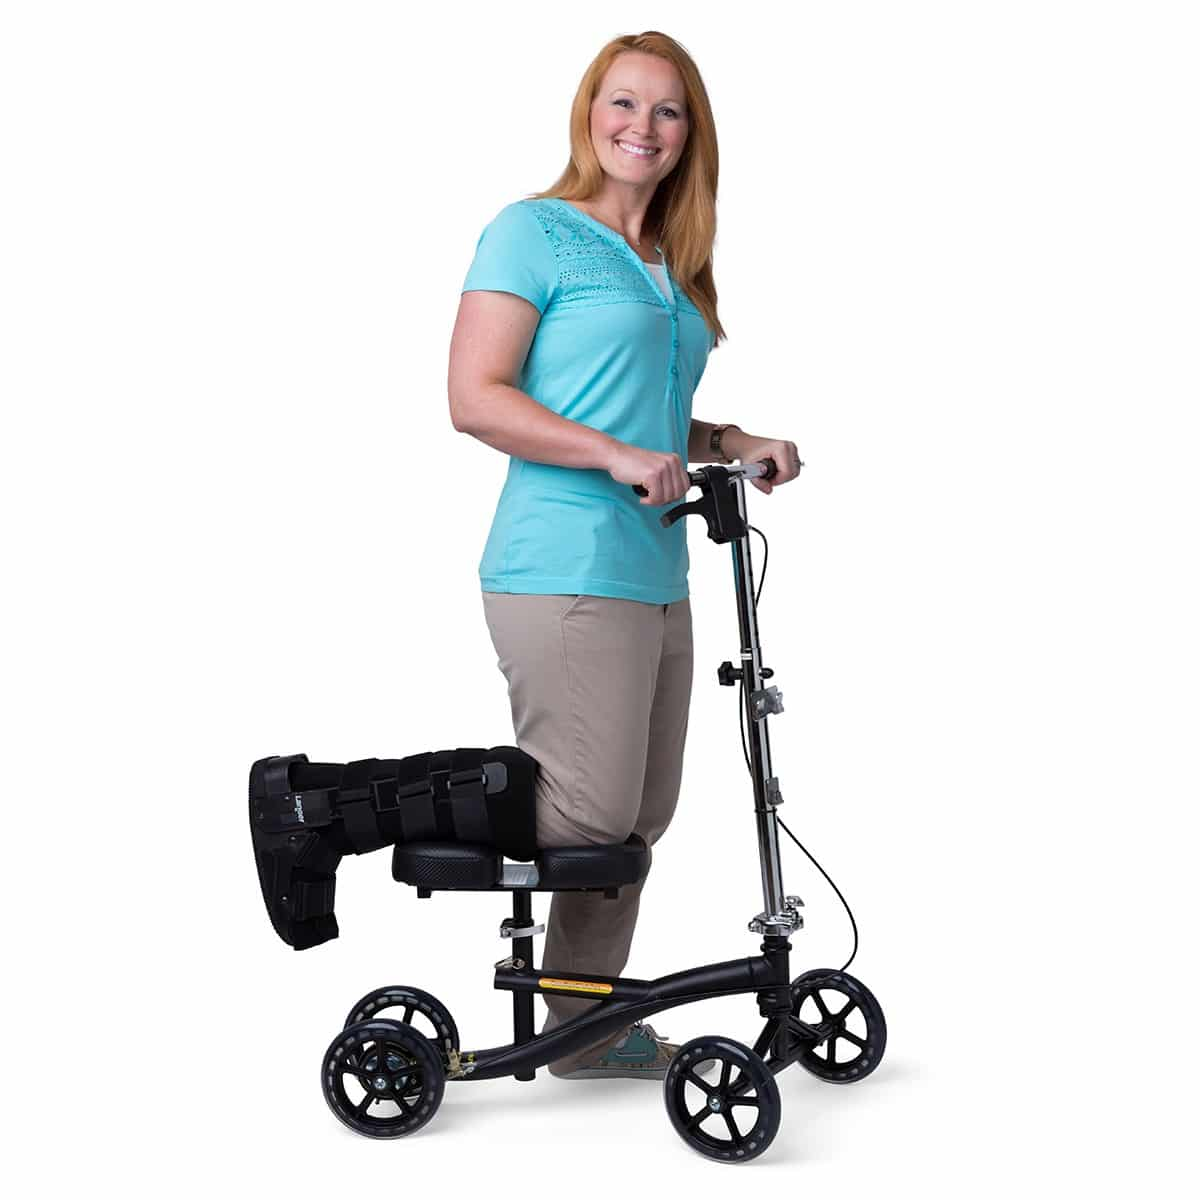 Knee Scooters a relatively recent invention, and are designed to aid in rehabilitation of those with foot and ankle injuries